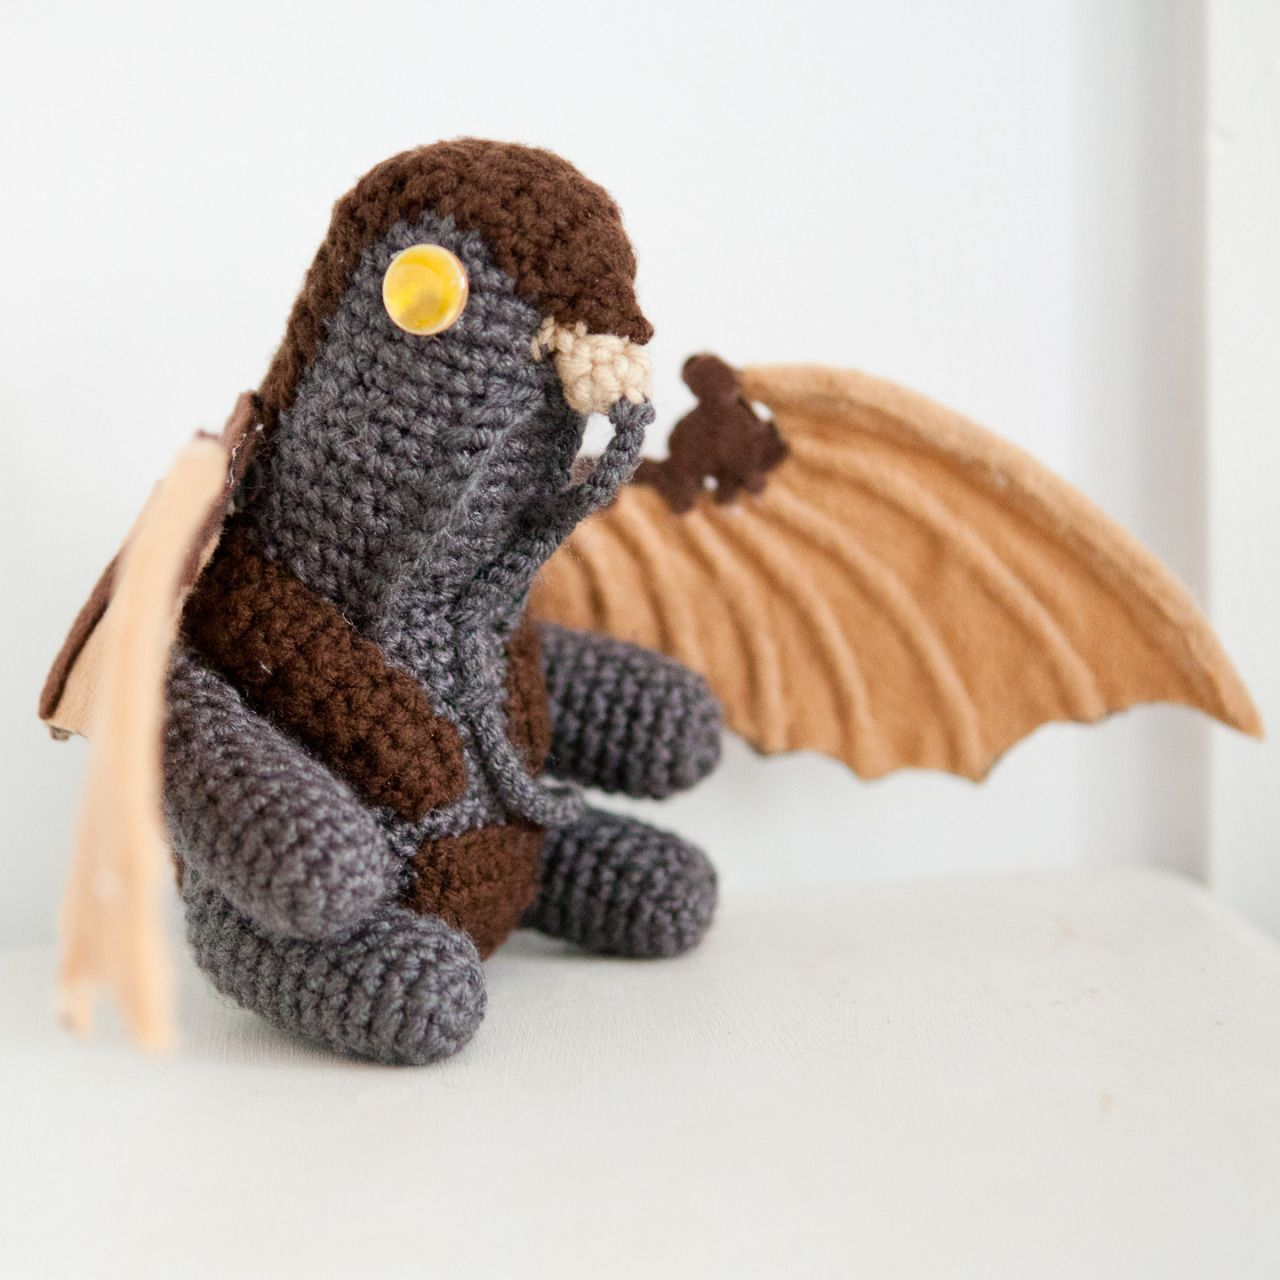 Amigurumi Crochet Songbird, from Bioshock Infinite thebhivecreations ...